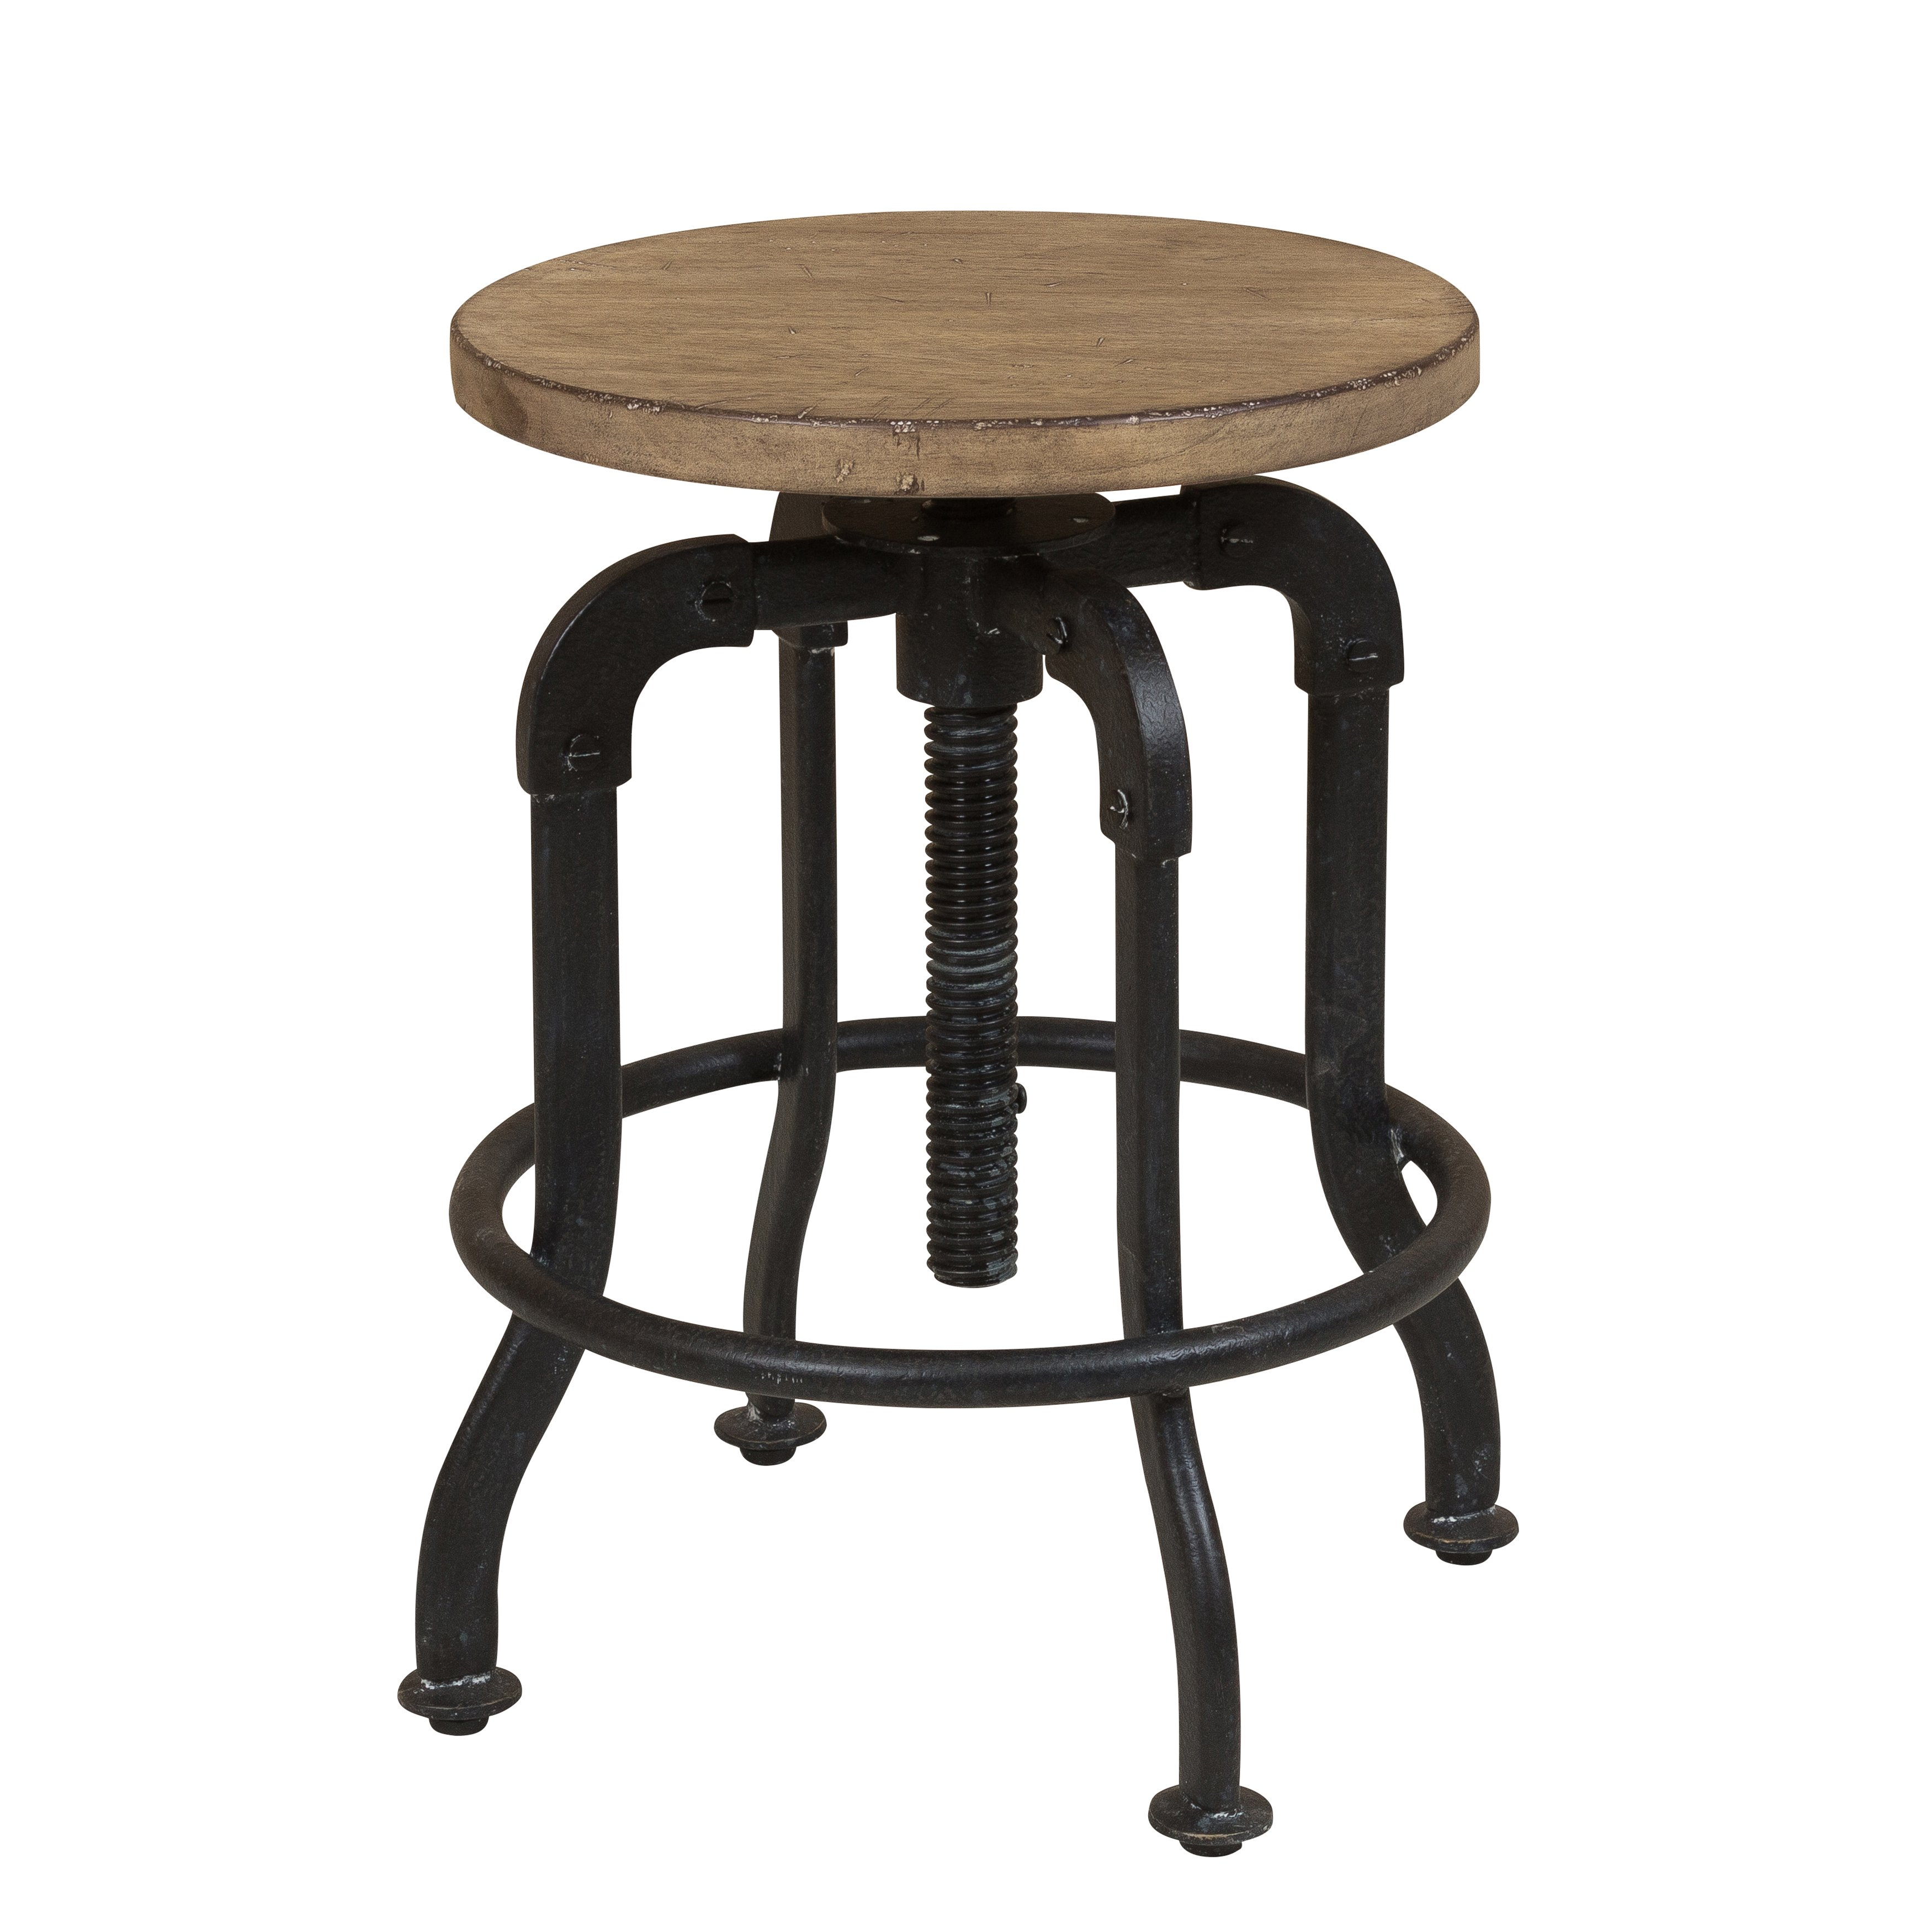 flatbush metal and wood adjustable height stool accent table side with marble shuffleboard wax mini lamp powered end designer floor lamps target red large antique dining room